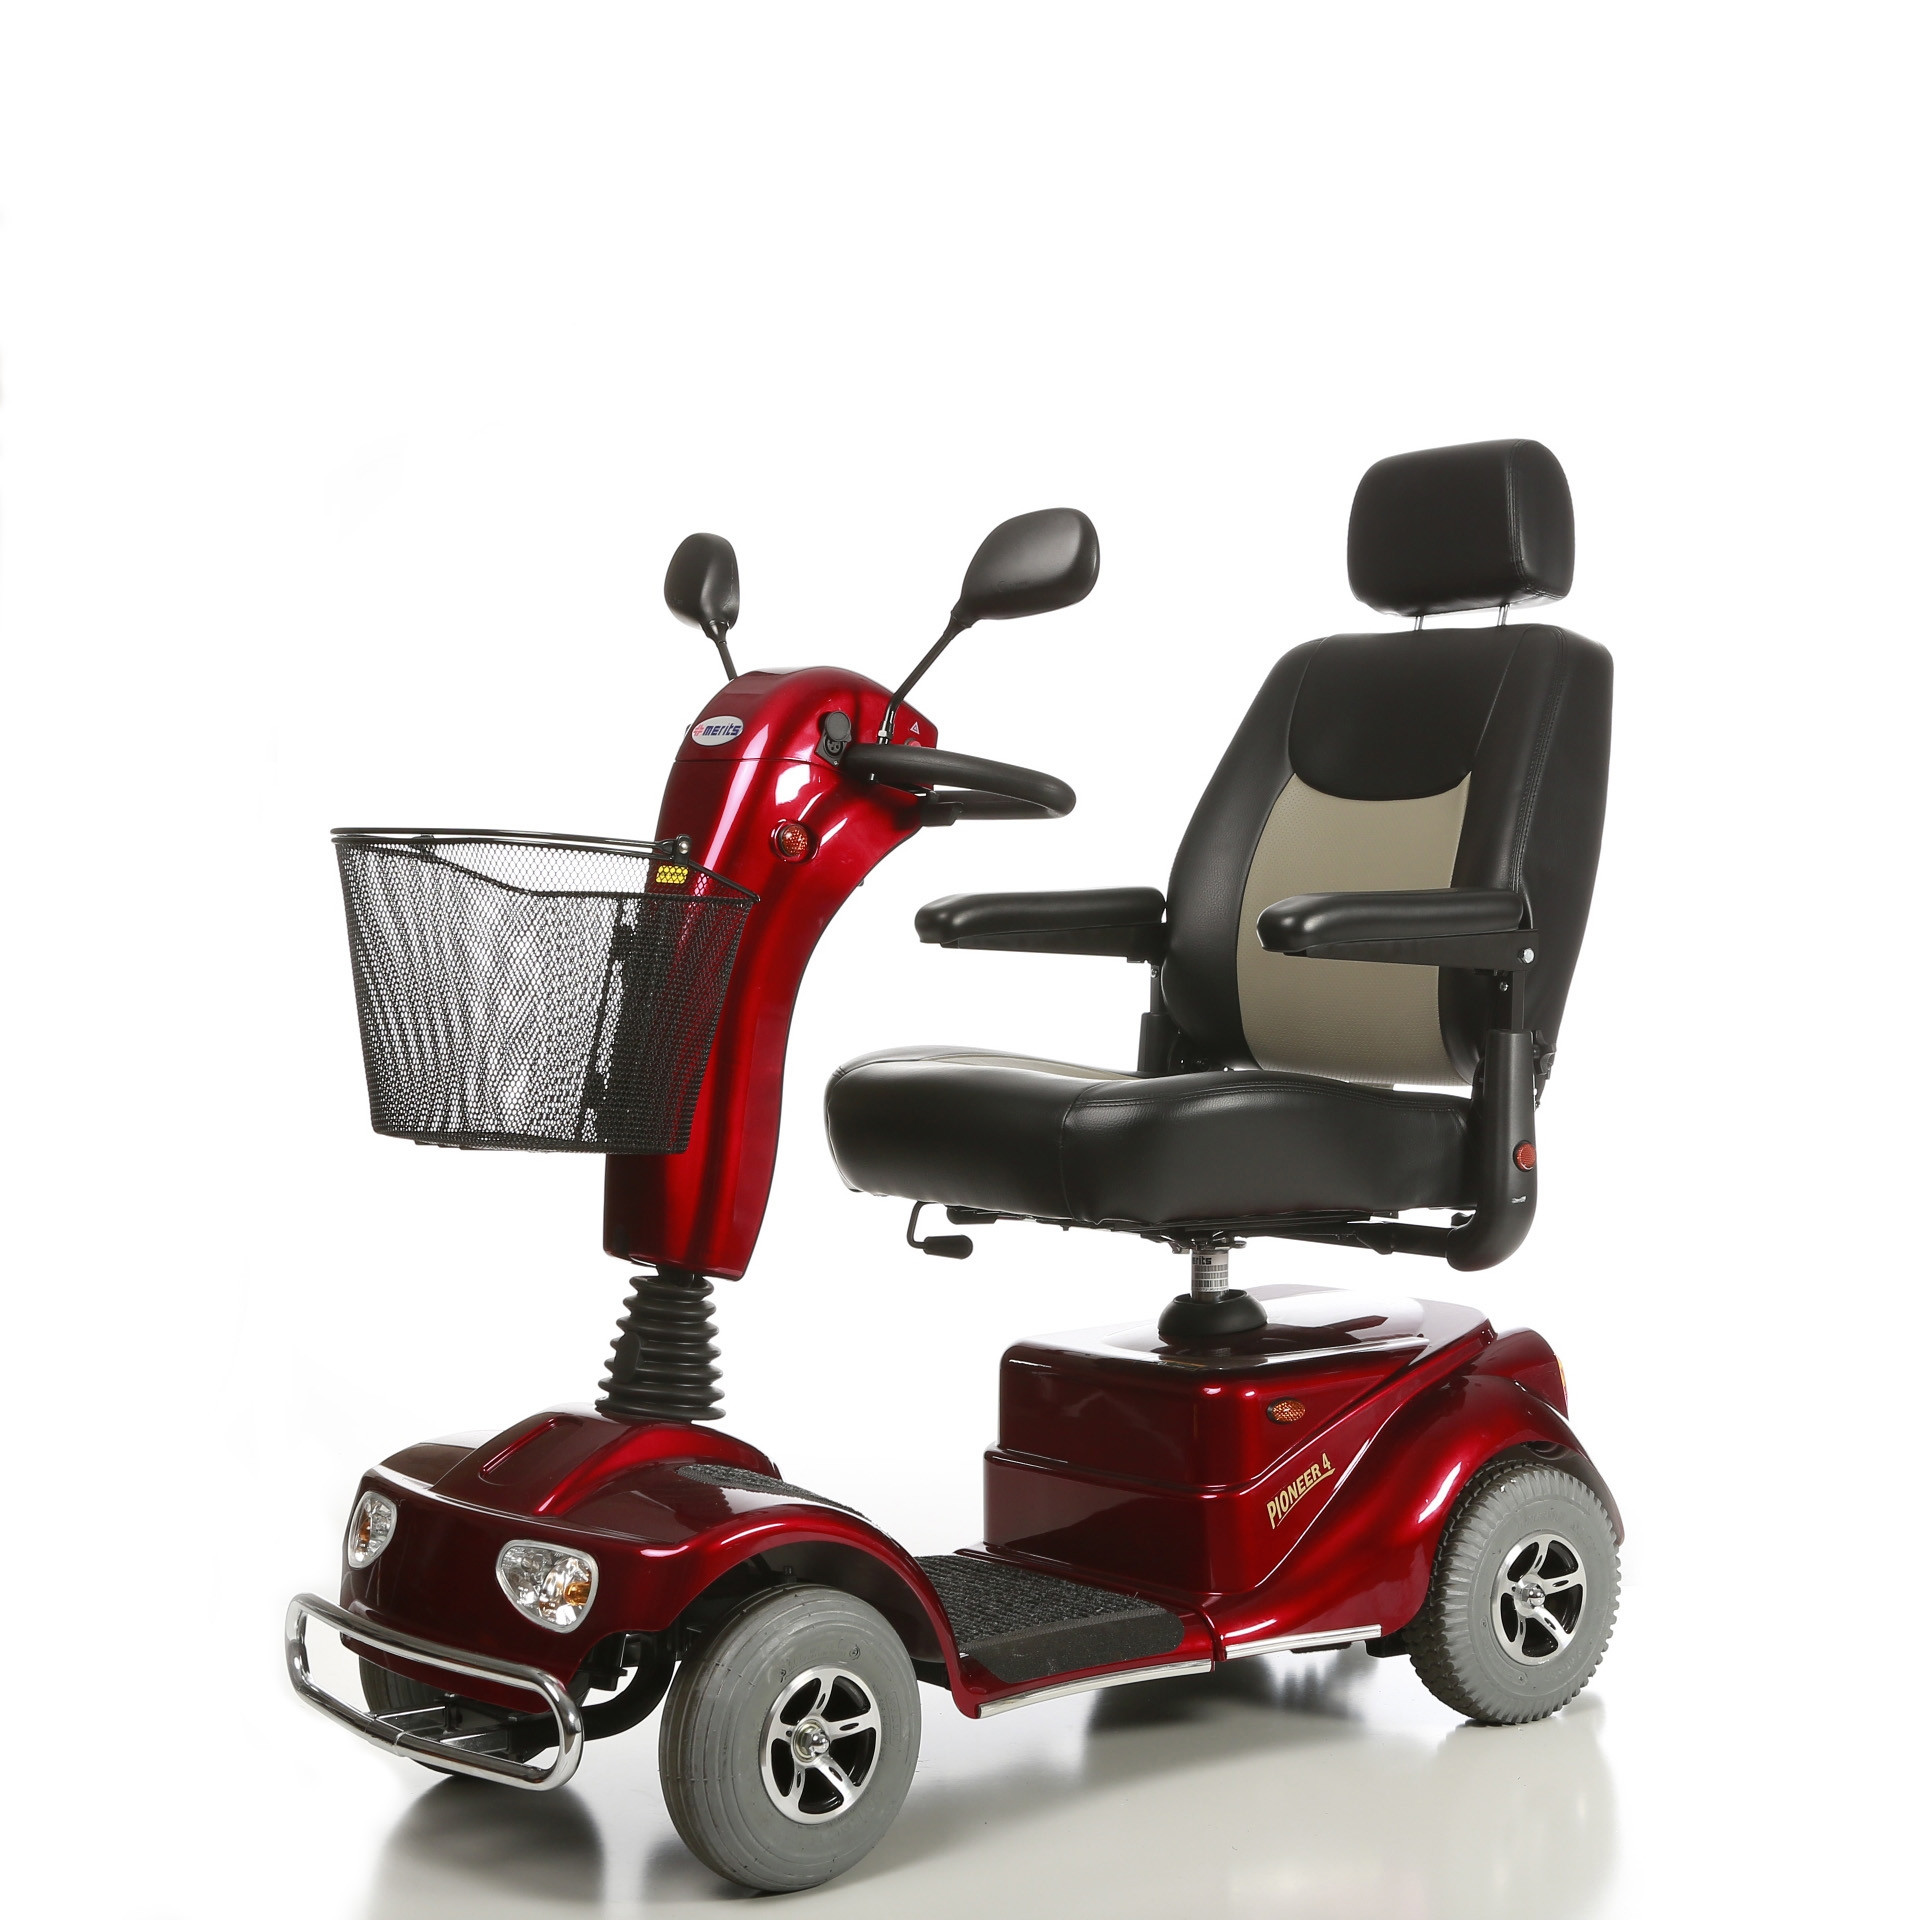 Merits Health S141 Pioneer 4 4 Wheel Mobility Scooter